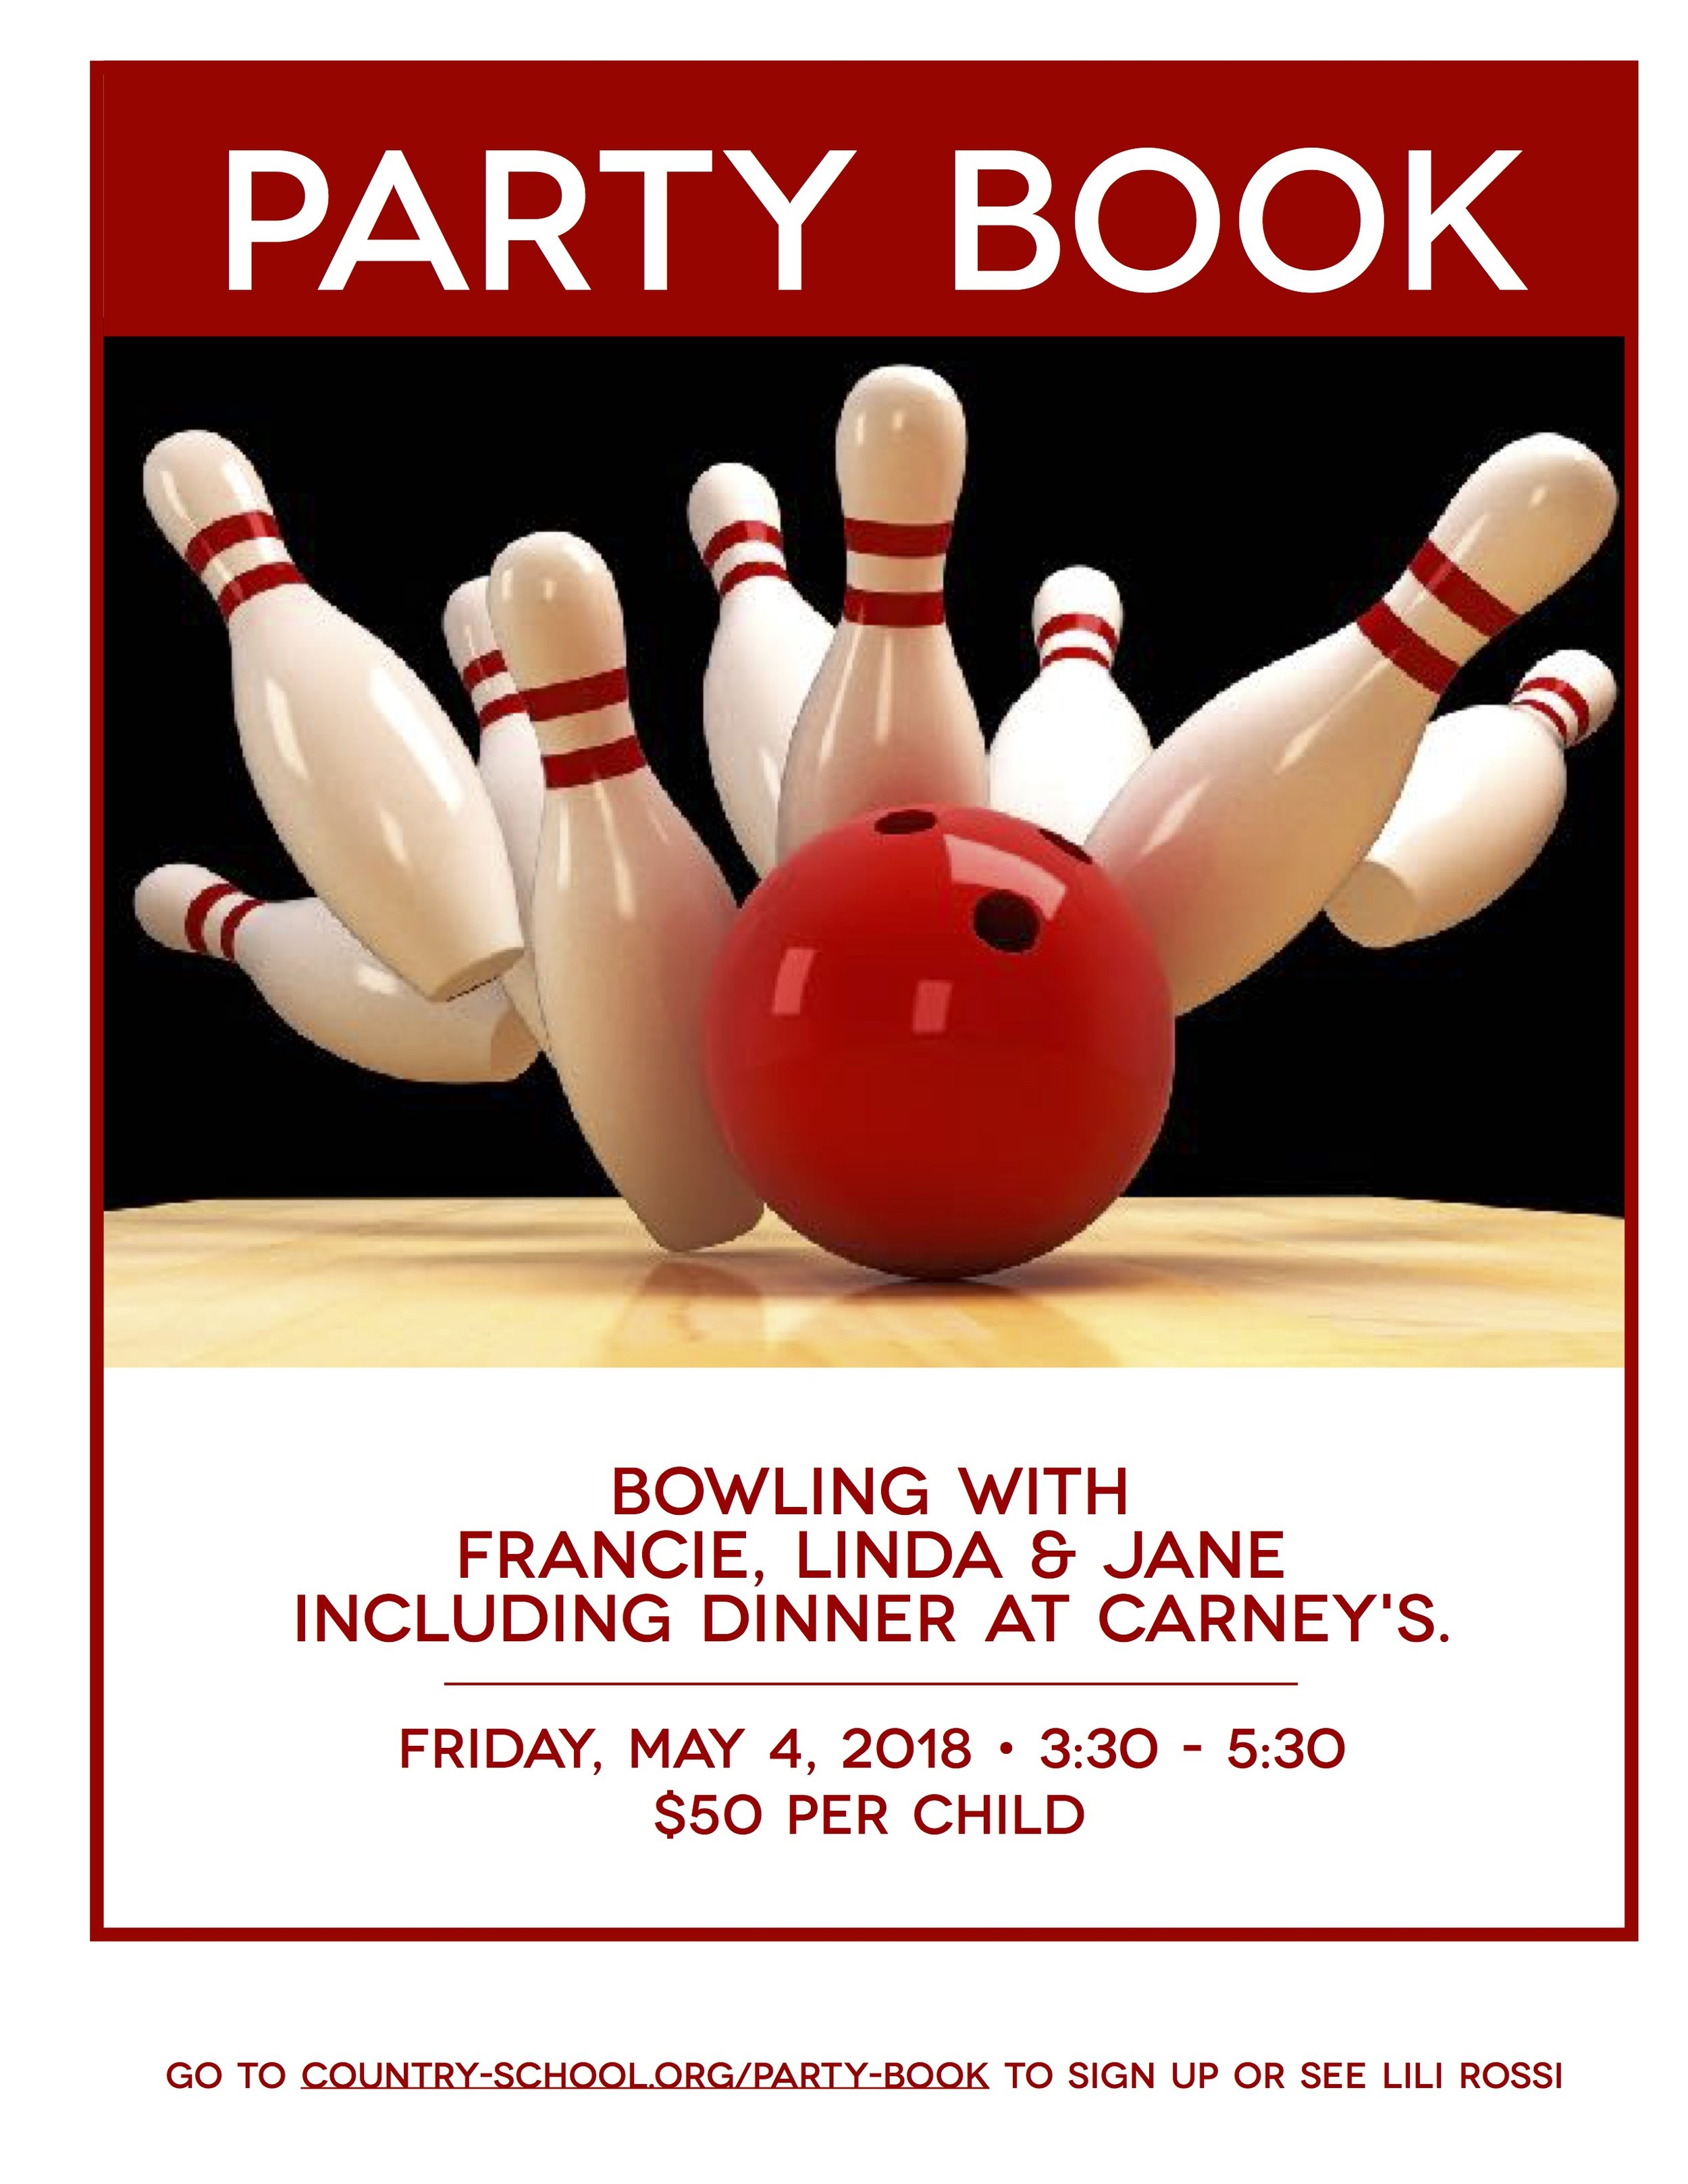 PartyBook_bowling_letter.jpg